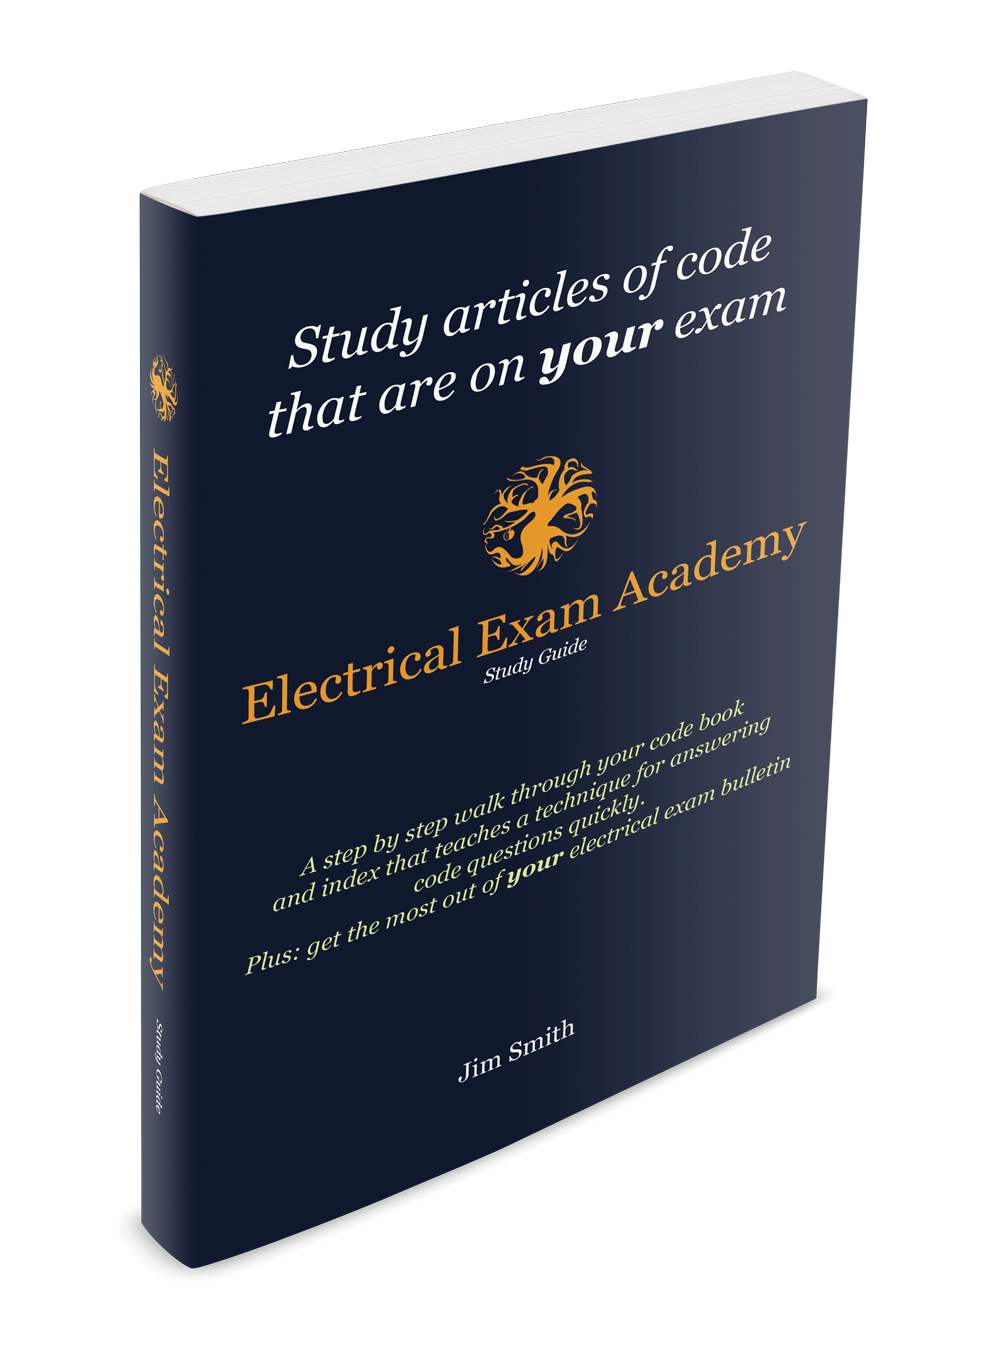 Electrical exam study guide electrical exam academy click the image greentooth Images